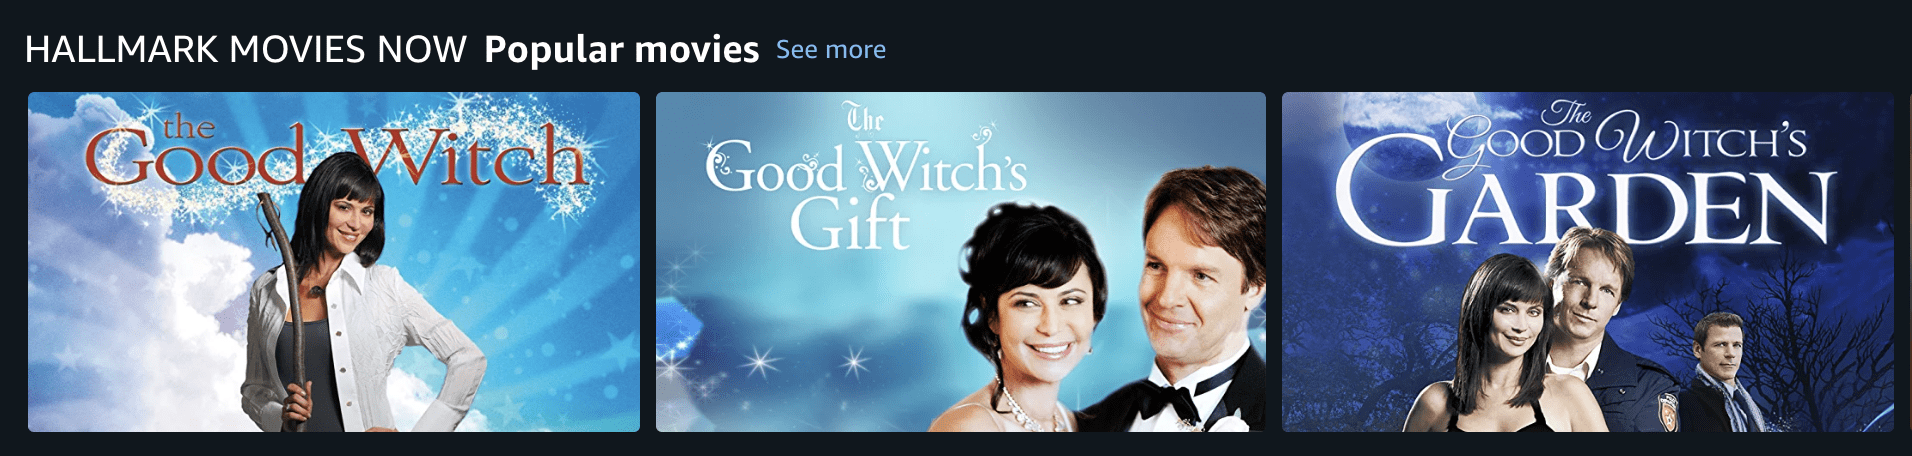 Hallmark Movies Now Channel